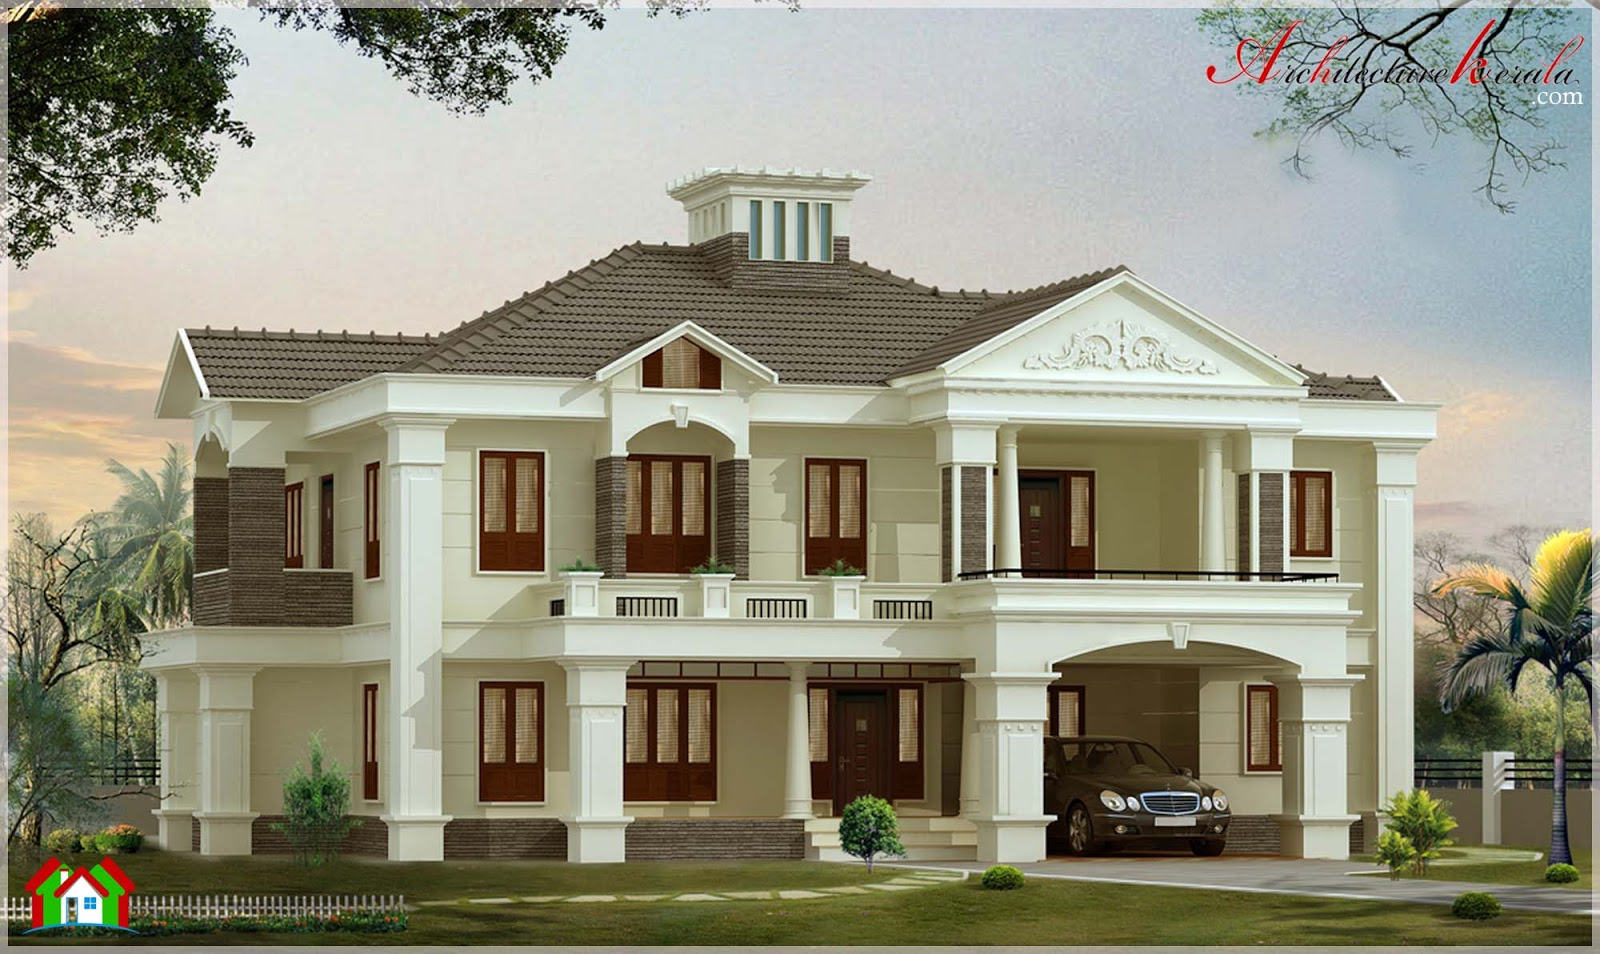 08 moreover Maame House Plan likewise Hwbdo11765 furthermore P3004 further 2015 05 01 archive. on modern house floor plans 4000 sq ft